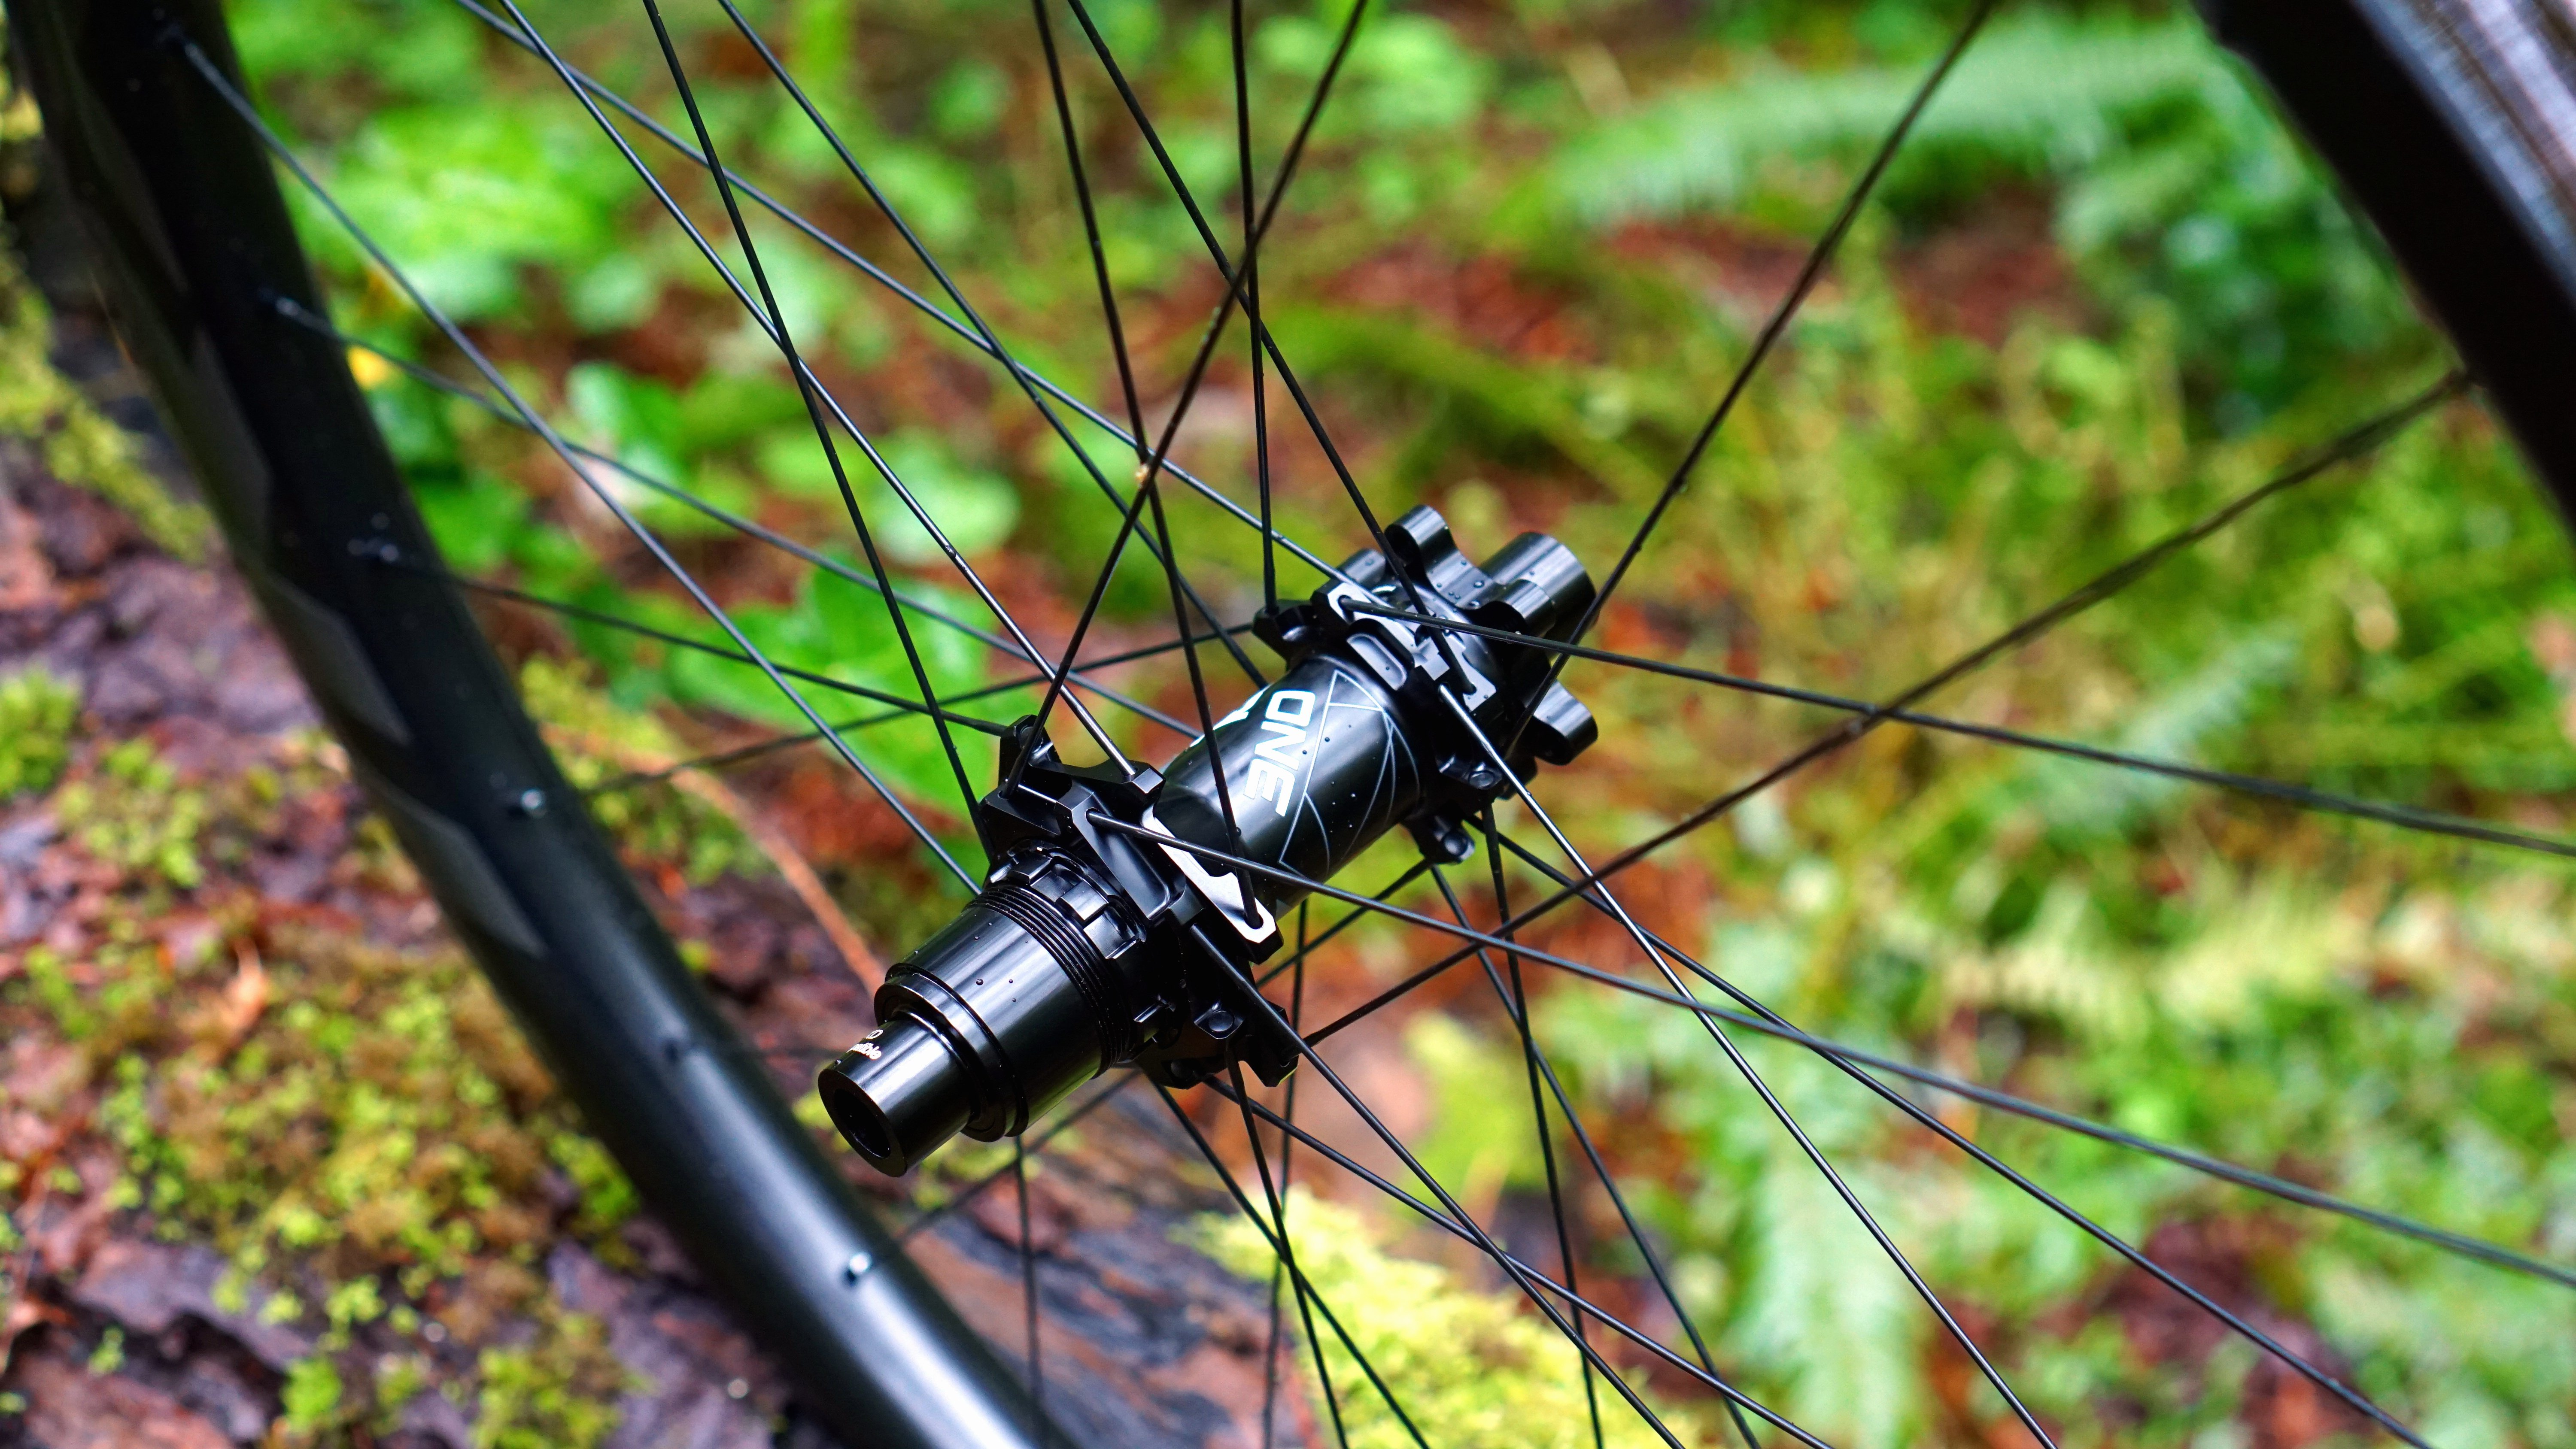 Giant_TRX0_Rear_Hub.JPG